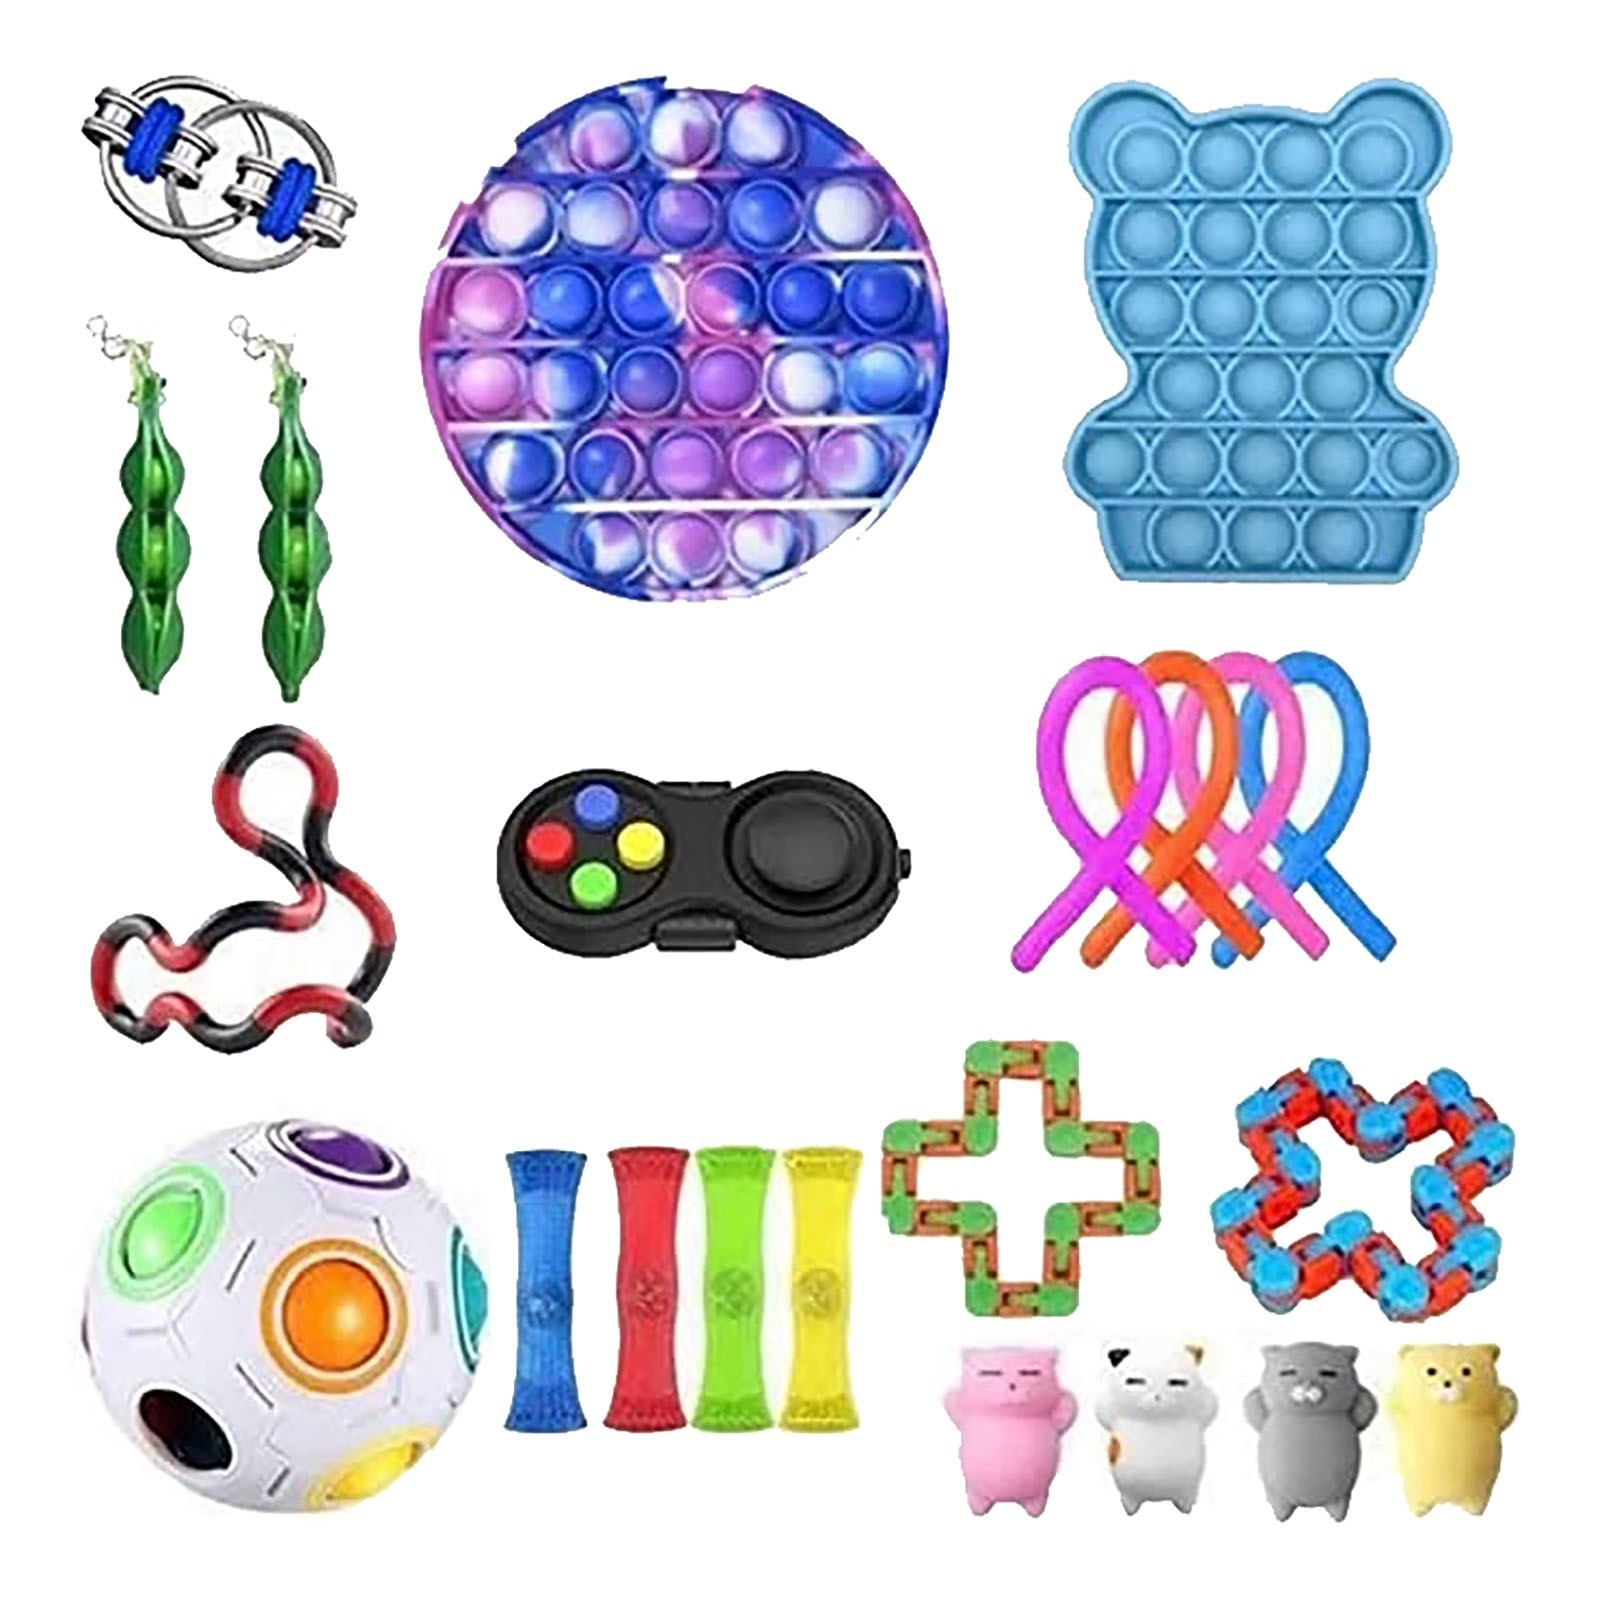 Fidget Toys Anti Stress Toy Set Stretchy Strings Mesh Marble Relief Gift For Children Adults Girl Sensory Antistress Relief Toys